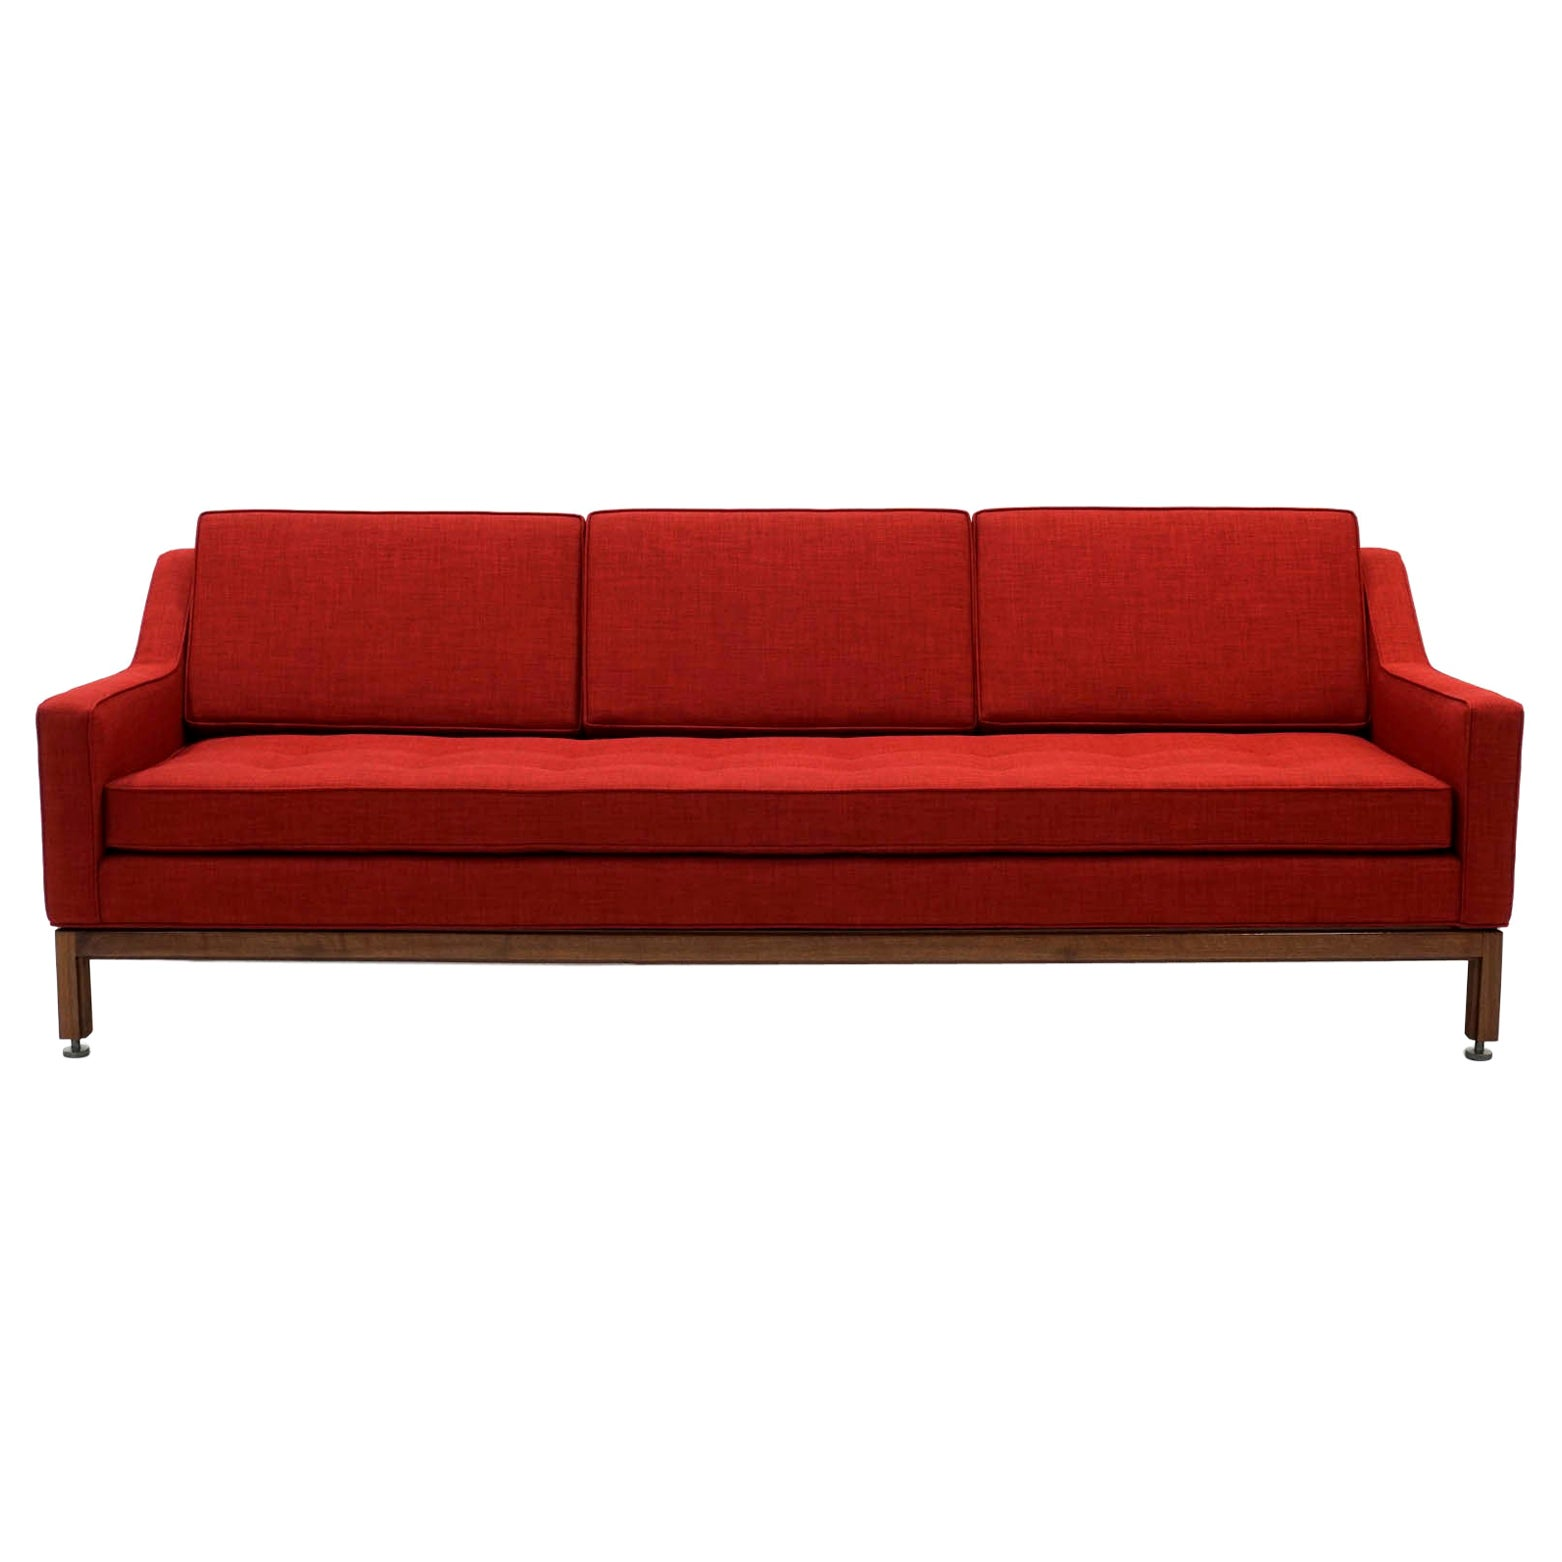 Red Three-Seat Sofa with Walnut Frame by Jens Risom, Expertly Restored